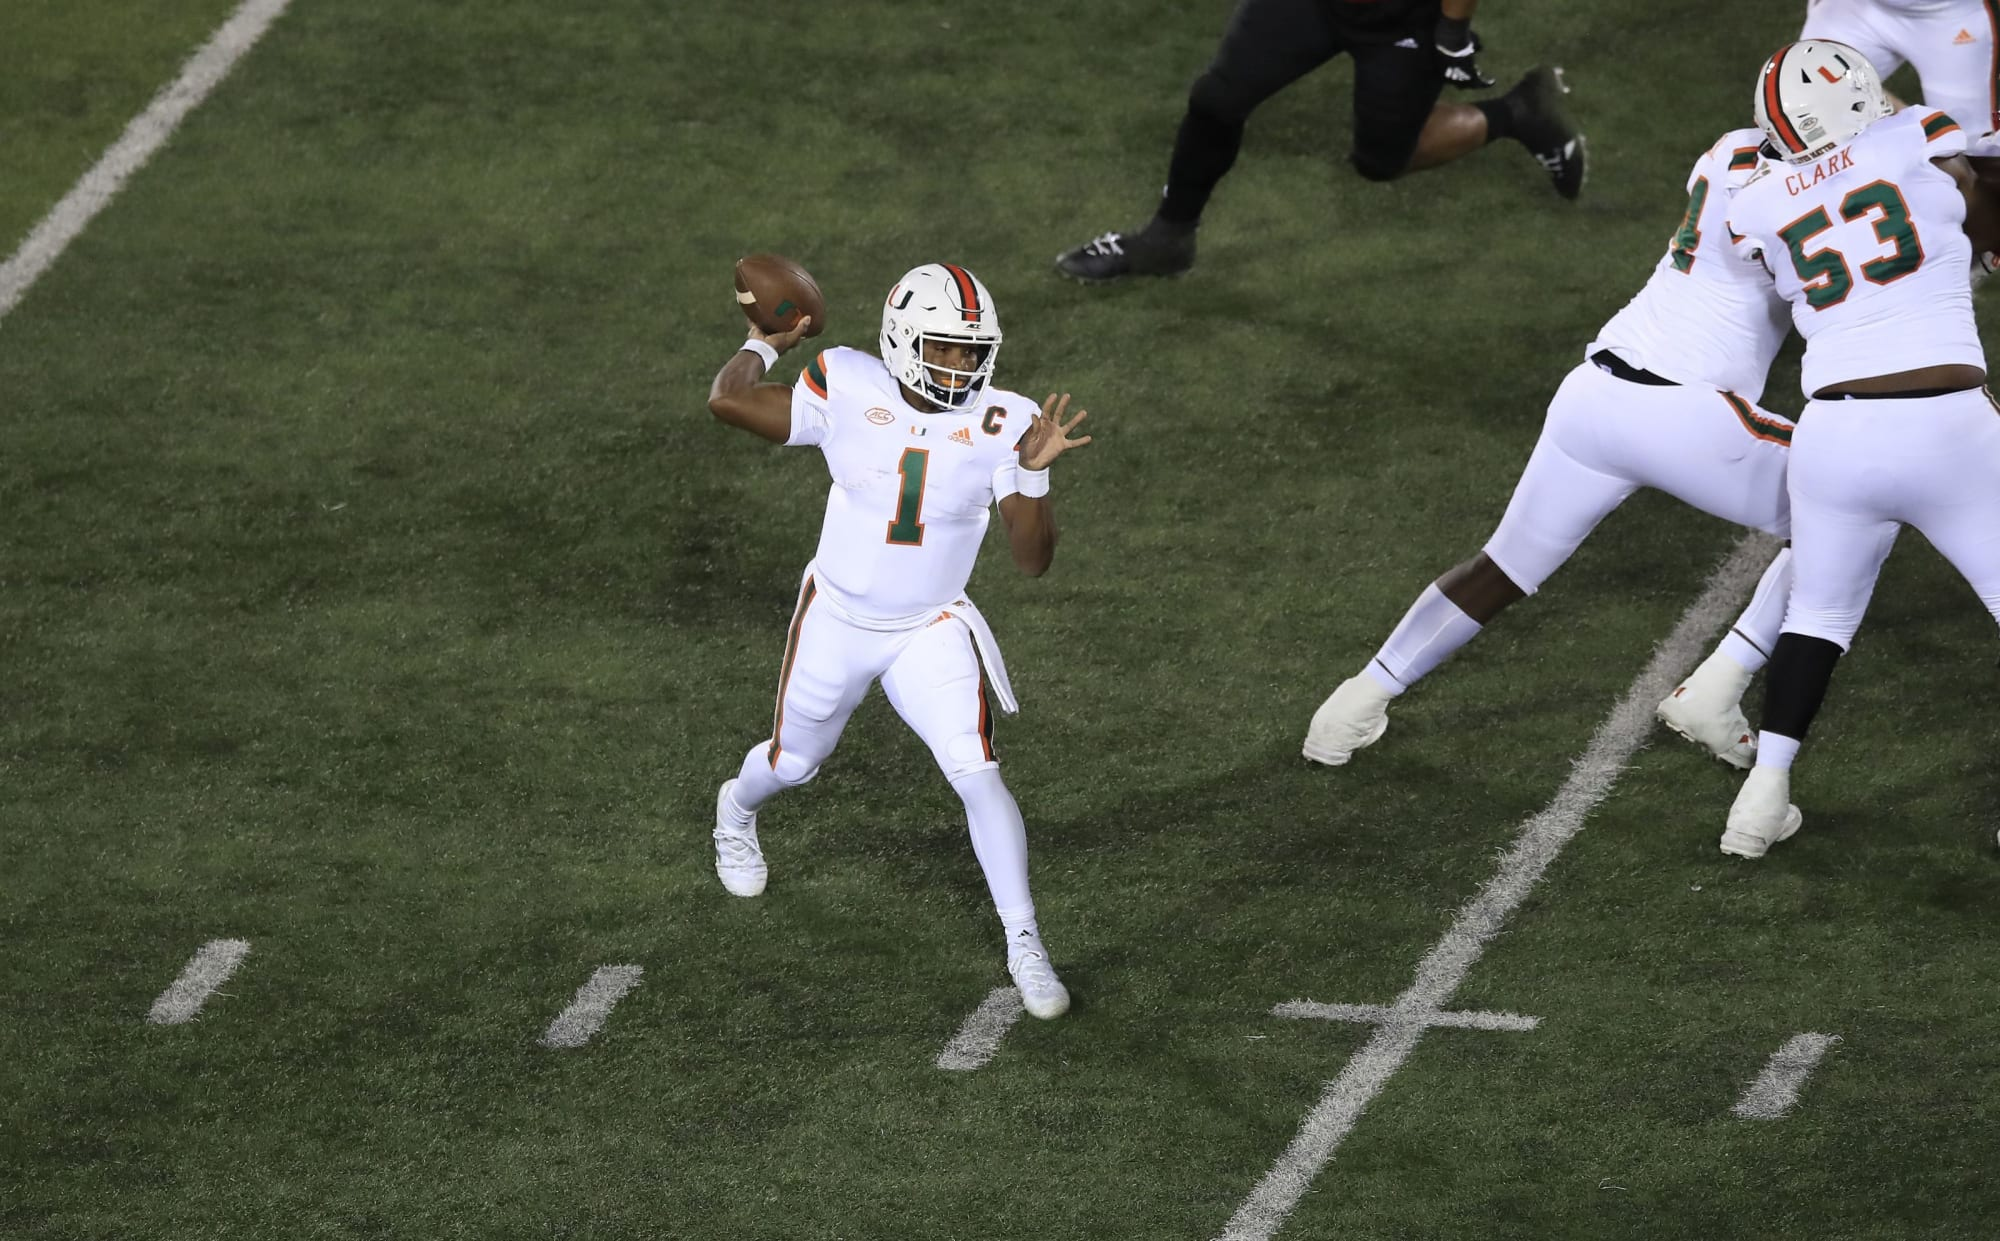 Miami football: D'Eriq King making miraculous recovery from ACL tear